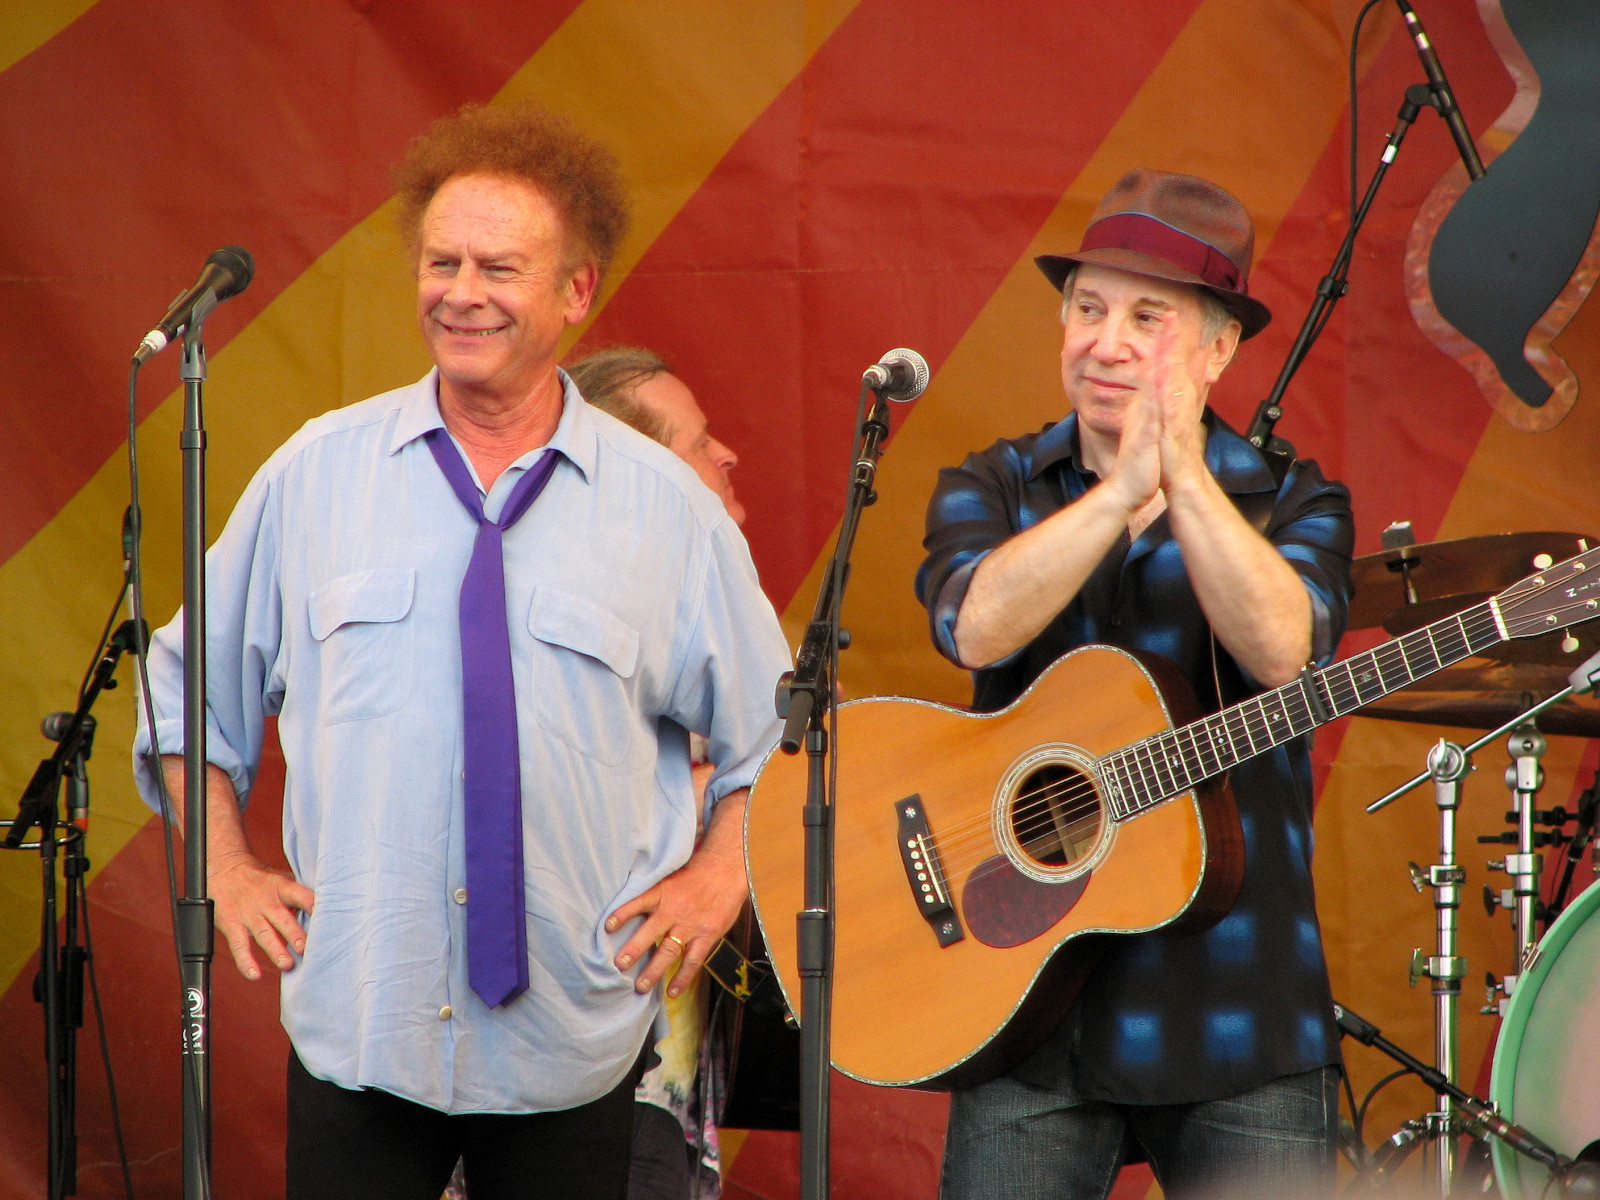 Simon & Garfunkel at Jazz Fest 2010